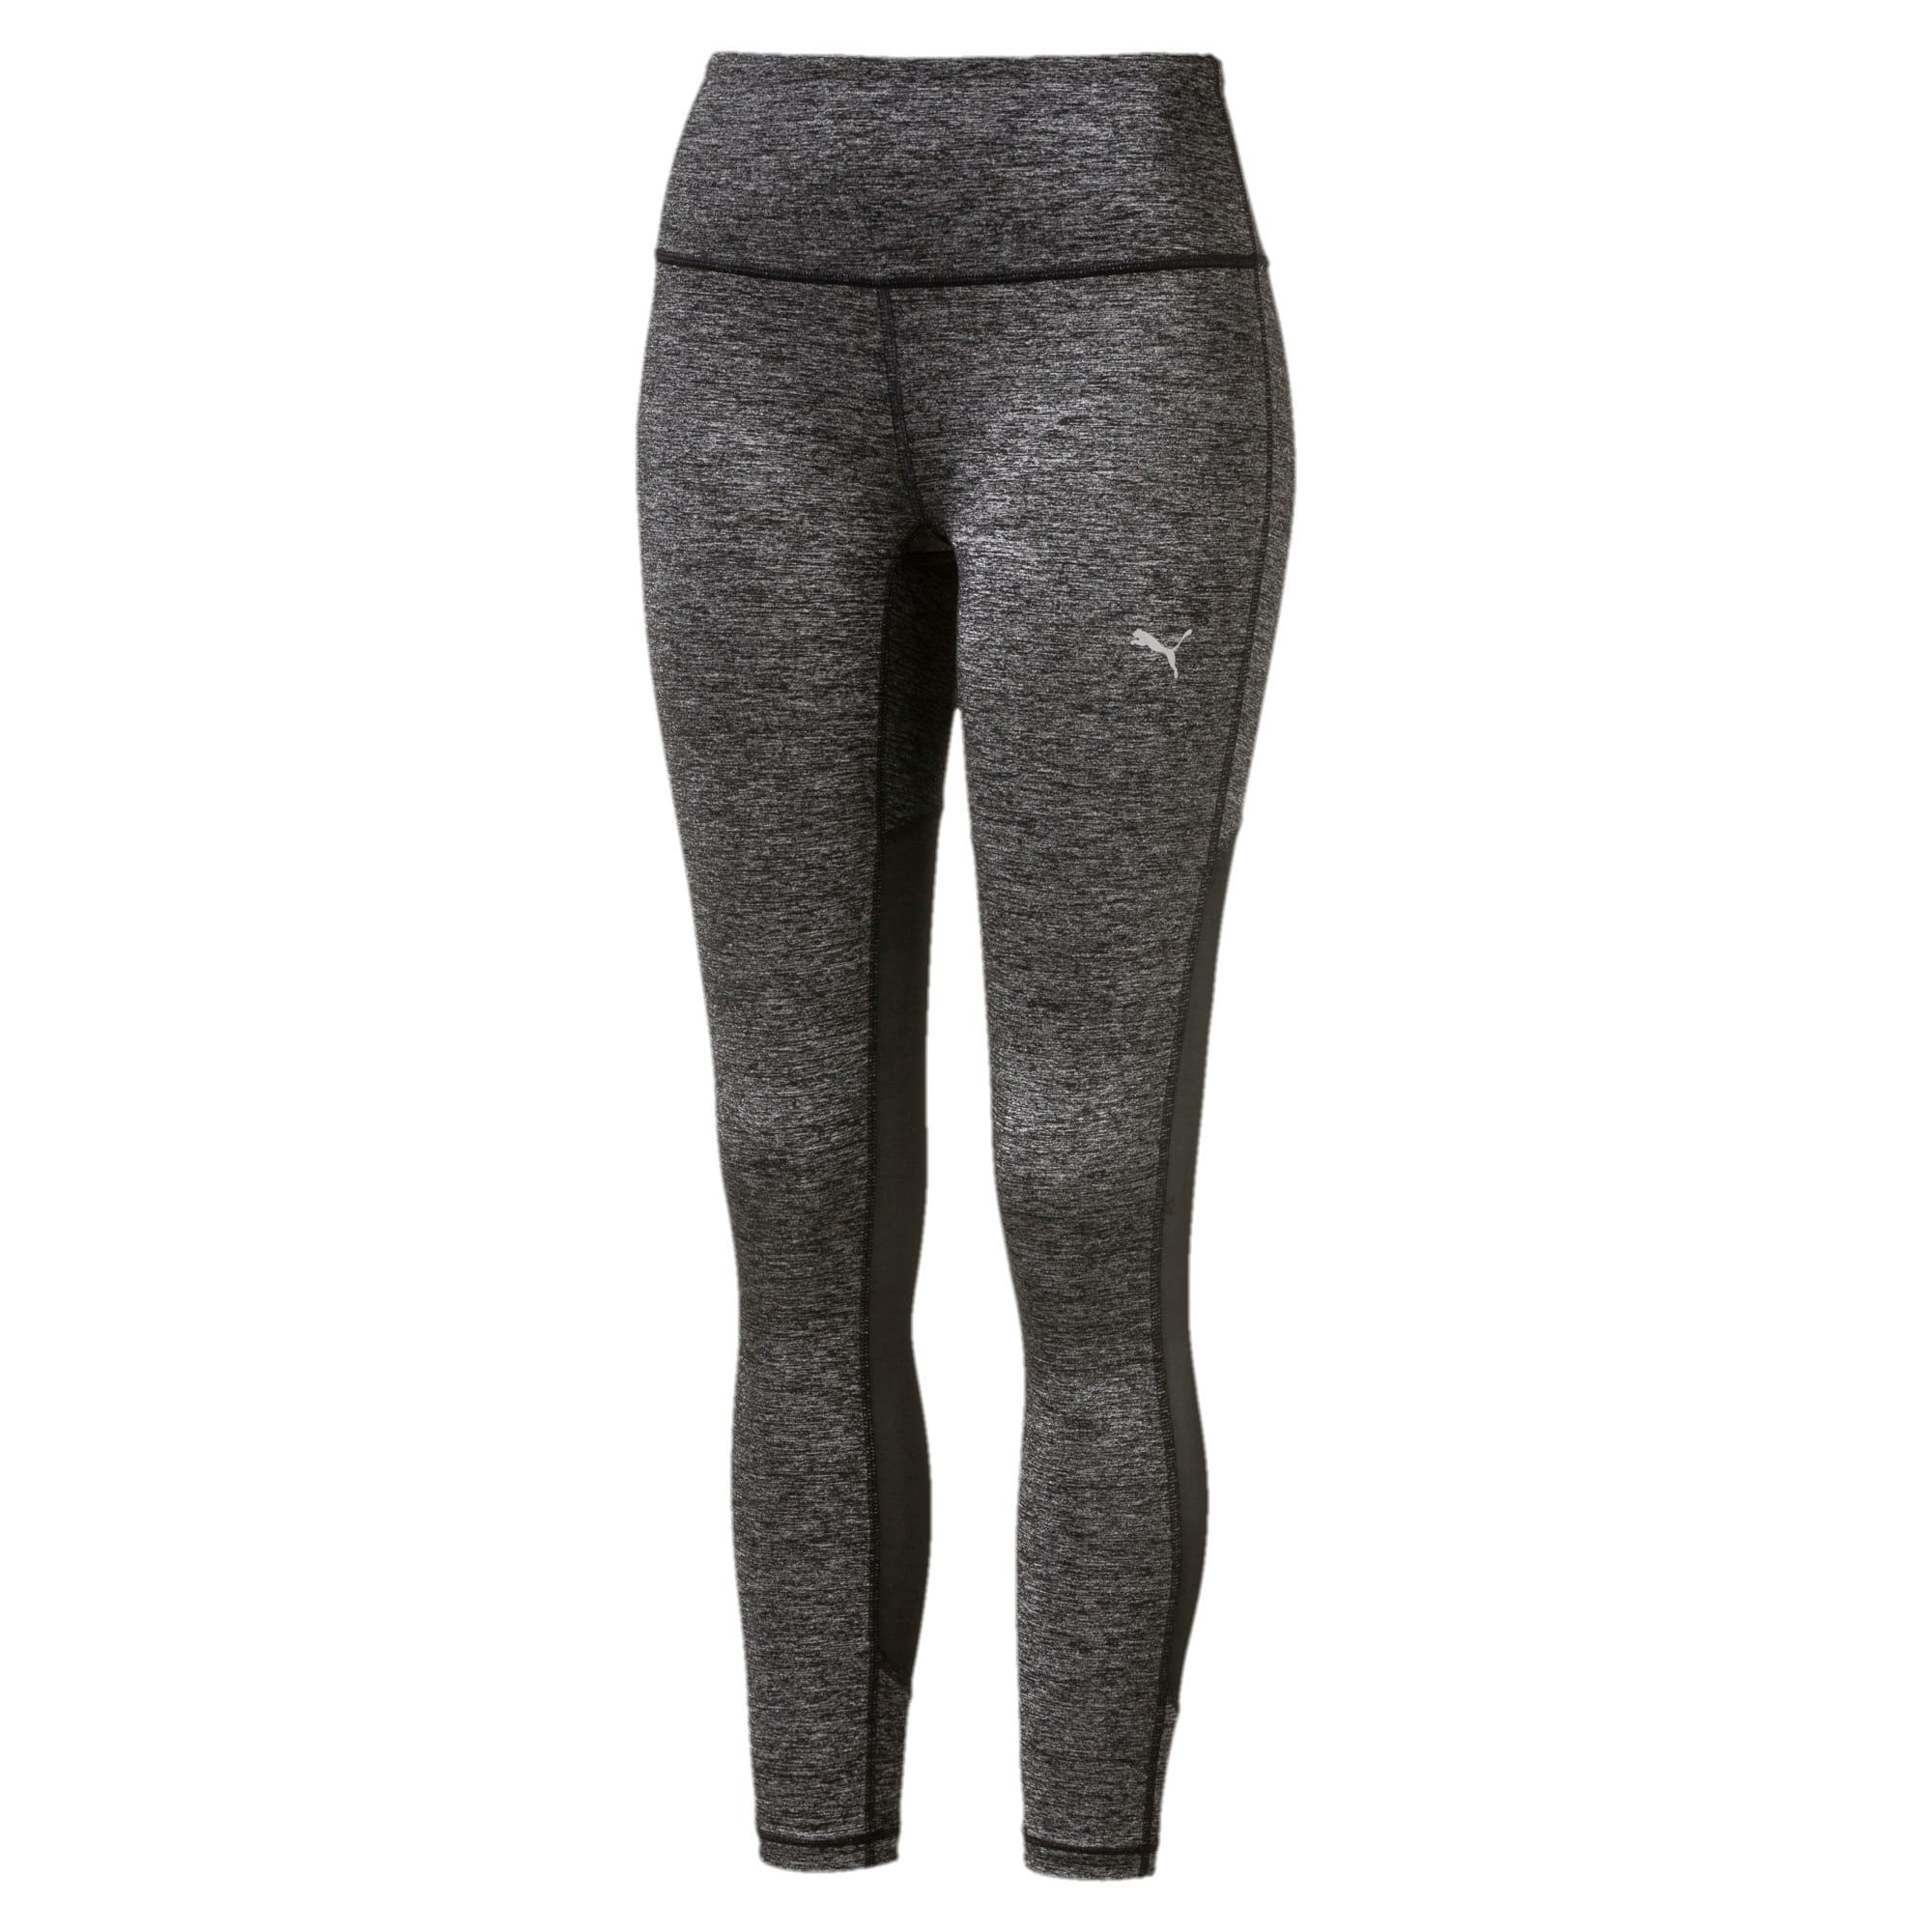 Thumbnail 1 of Explosive Run Women's 7/8 Tights, Puma Black Heather-Puma Blck, medium-IND